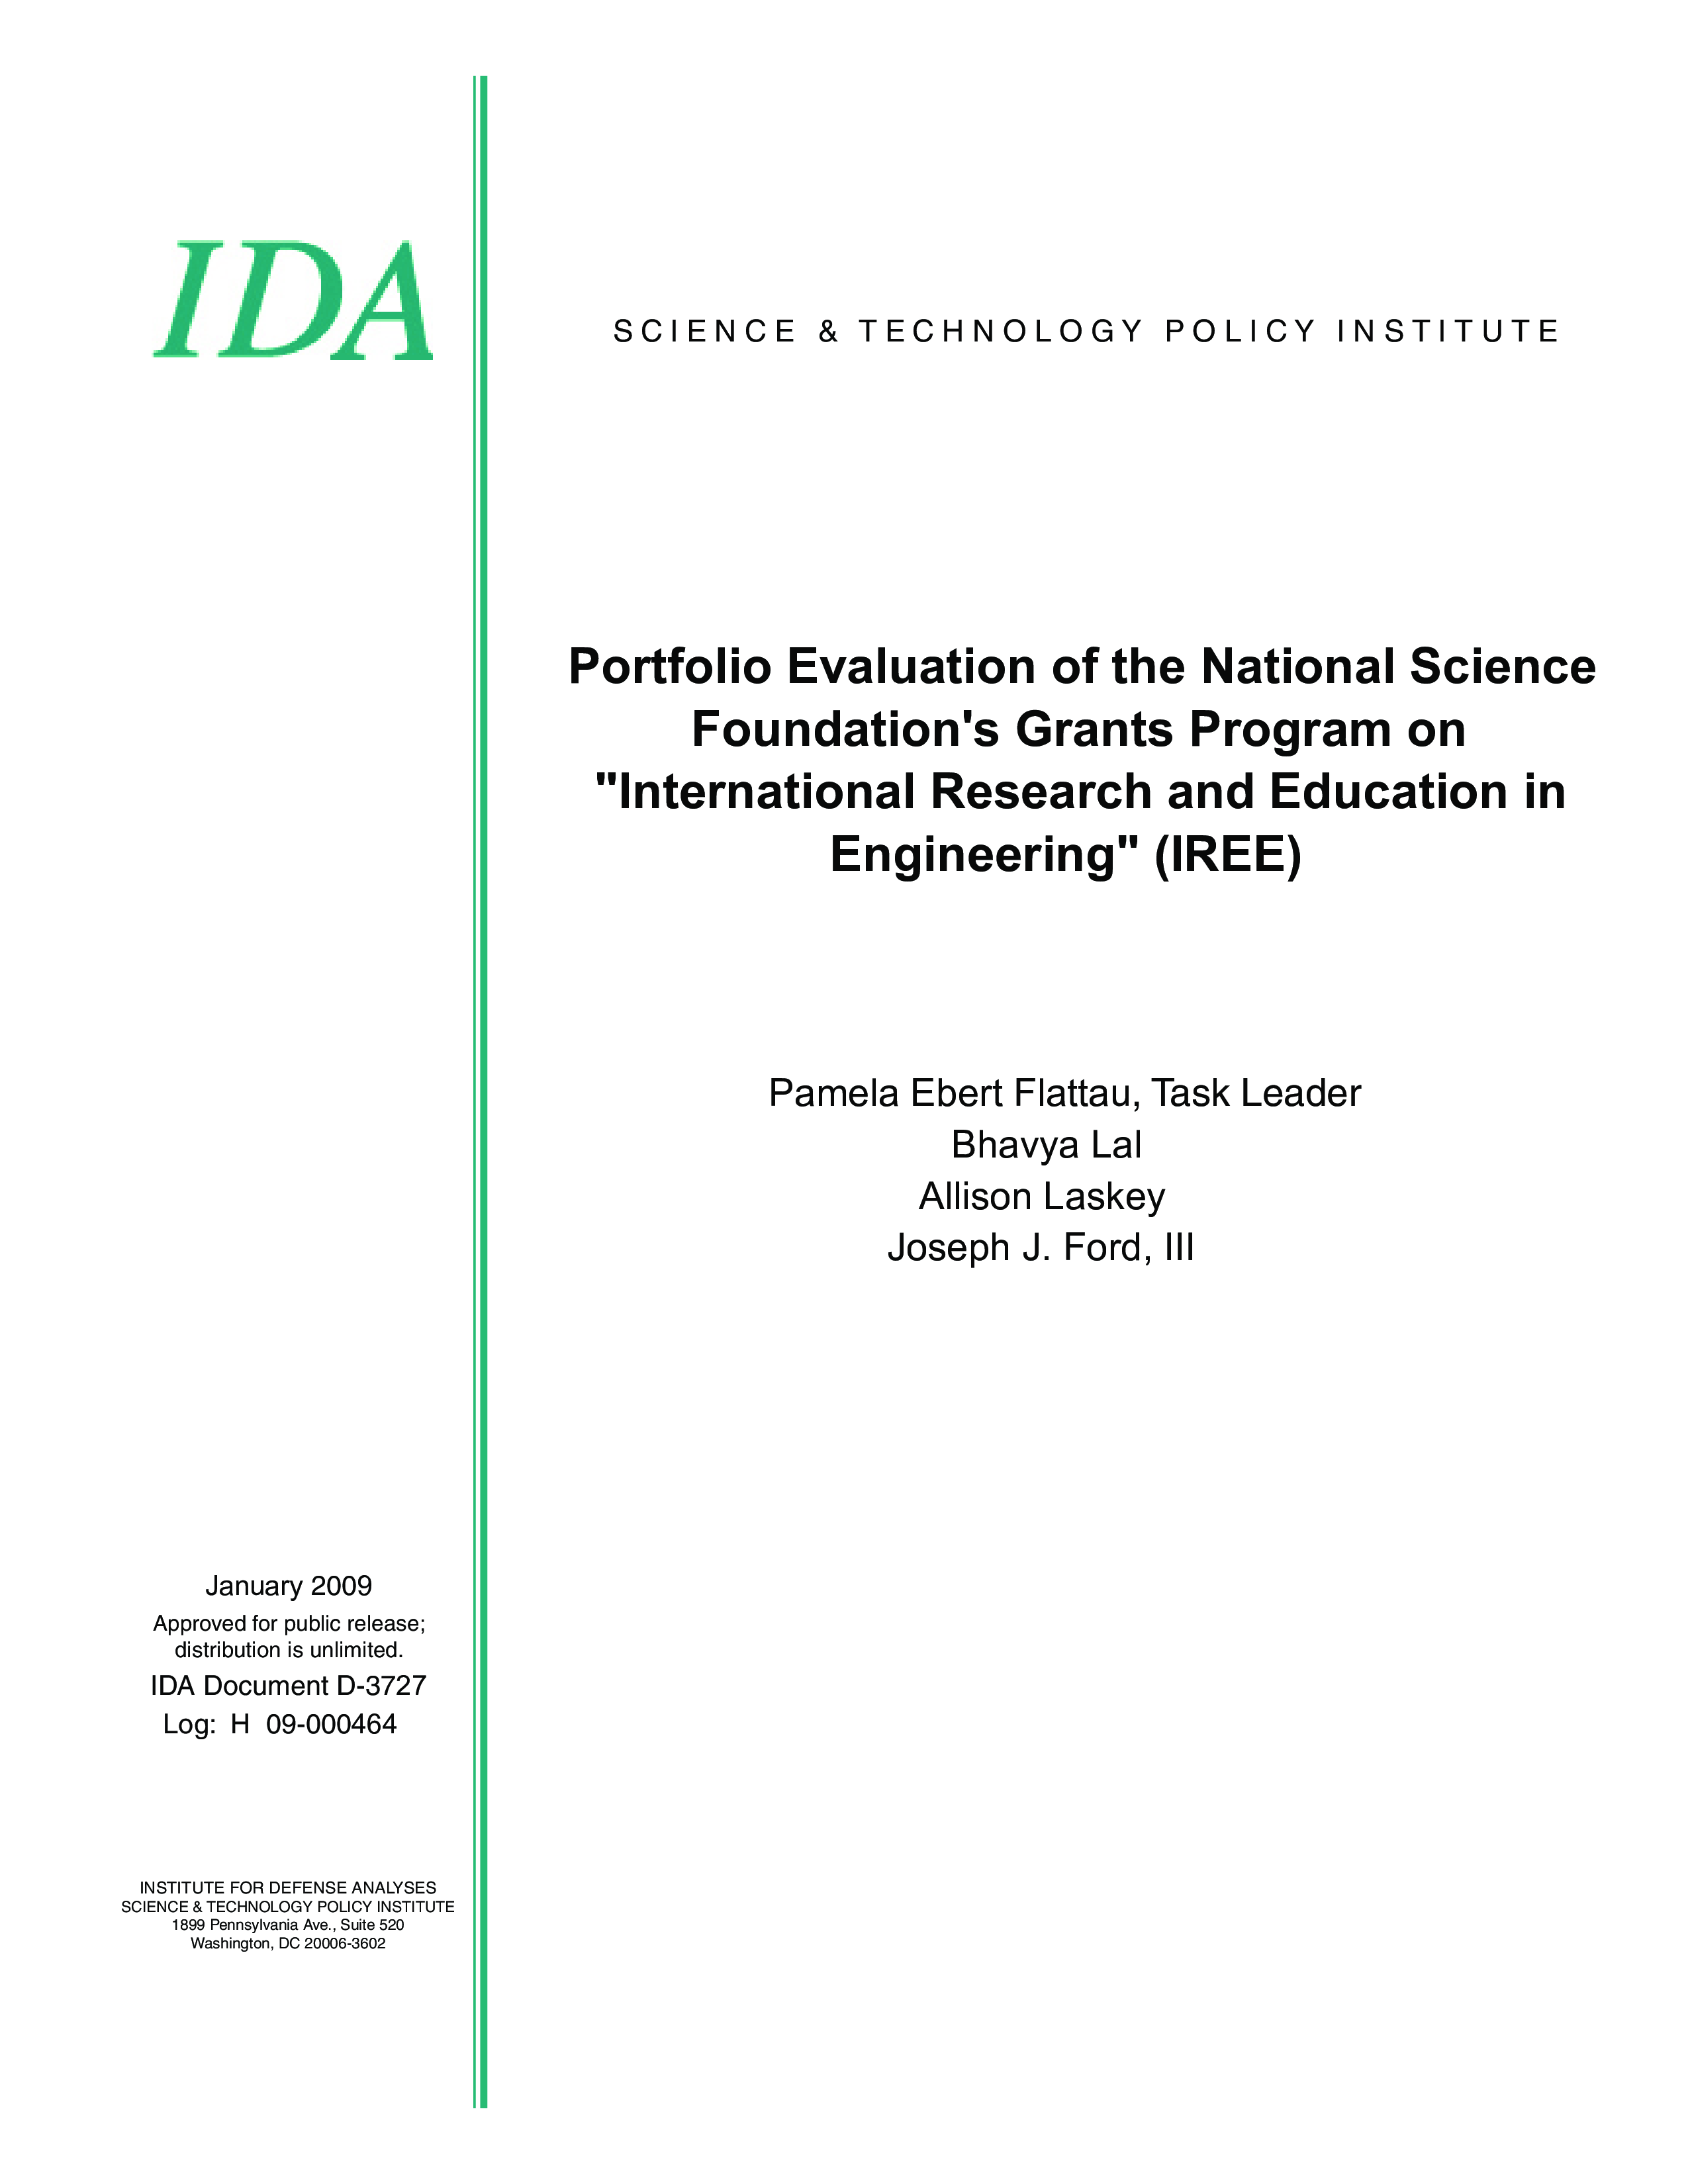 Portfolio Evaluation of the National Science Foundation